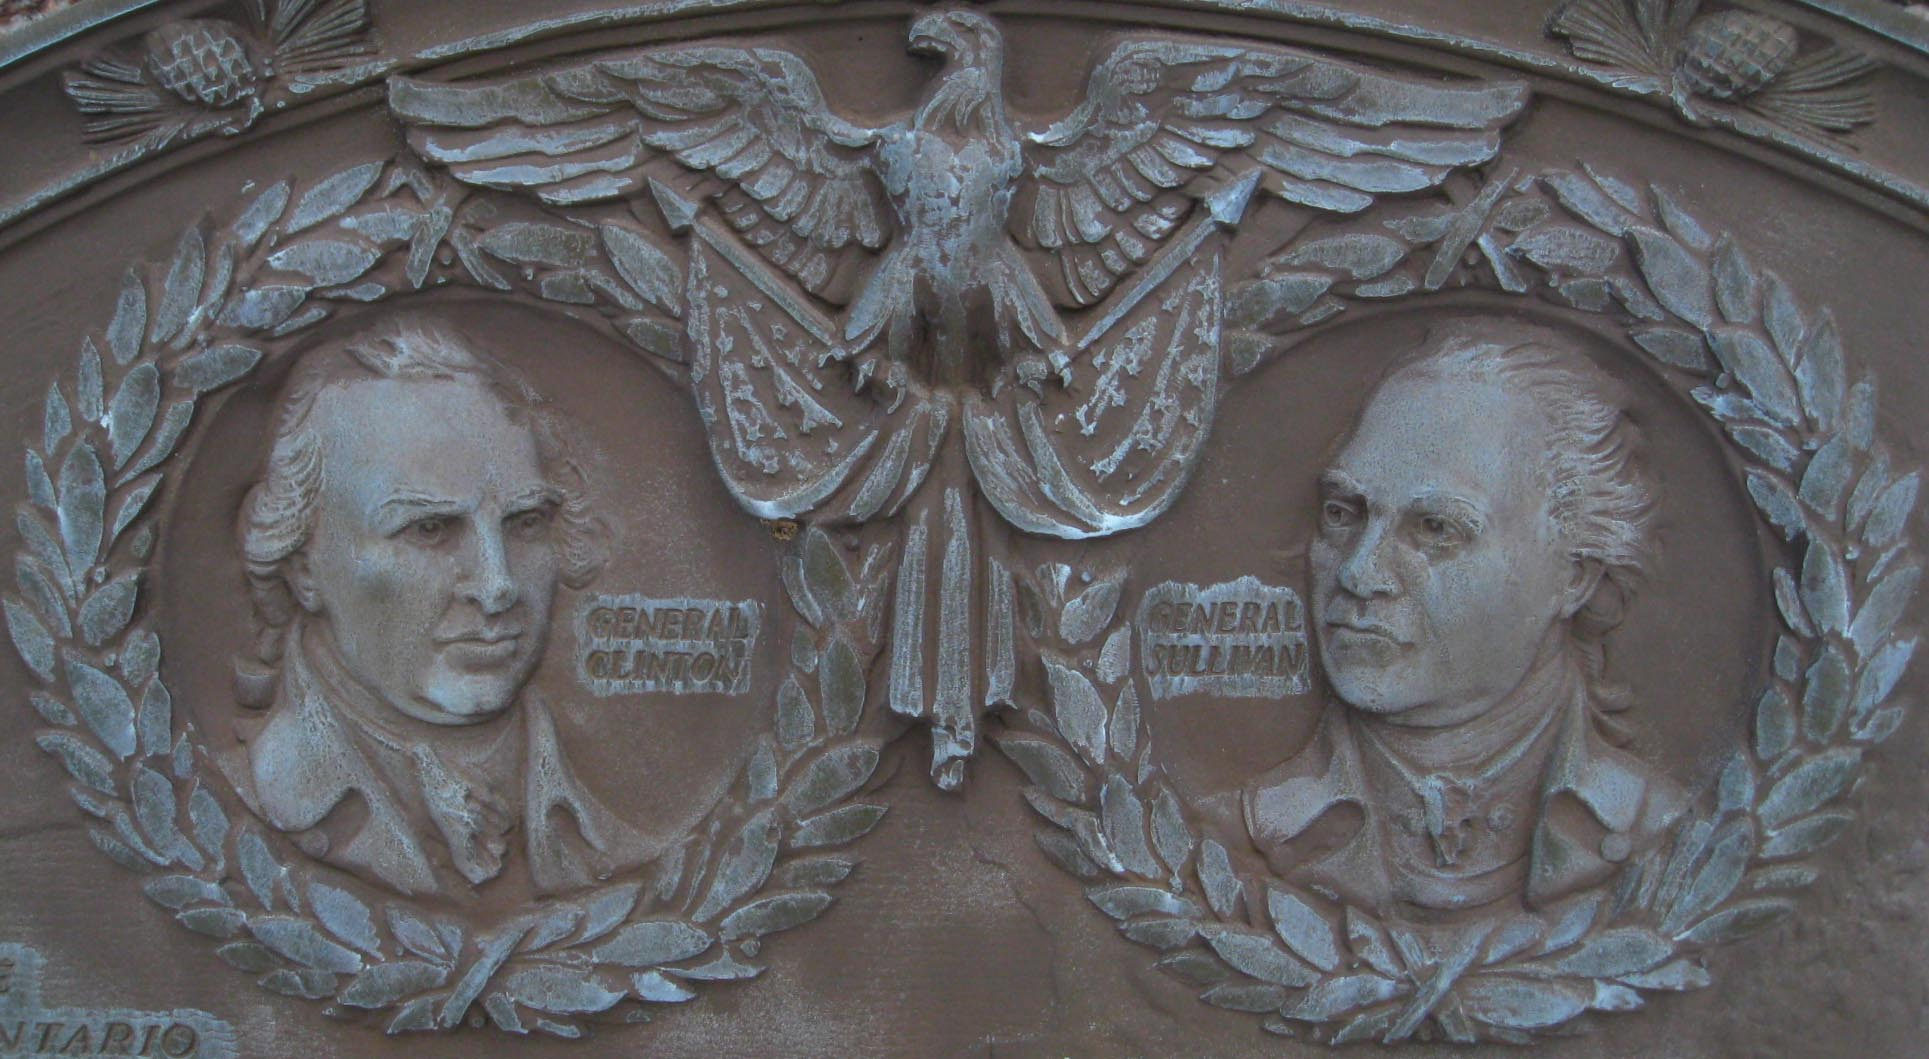 Specific detail of a plaque erected by the state of New York in 1929 commemorating The Sullivan Expedition. Detail shows General John Sullivan and General James Clinton. Photo taken on January 3, 2009.